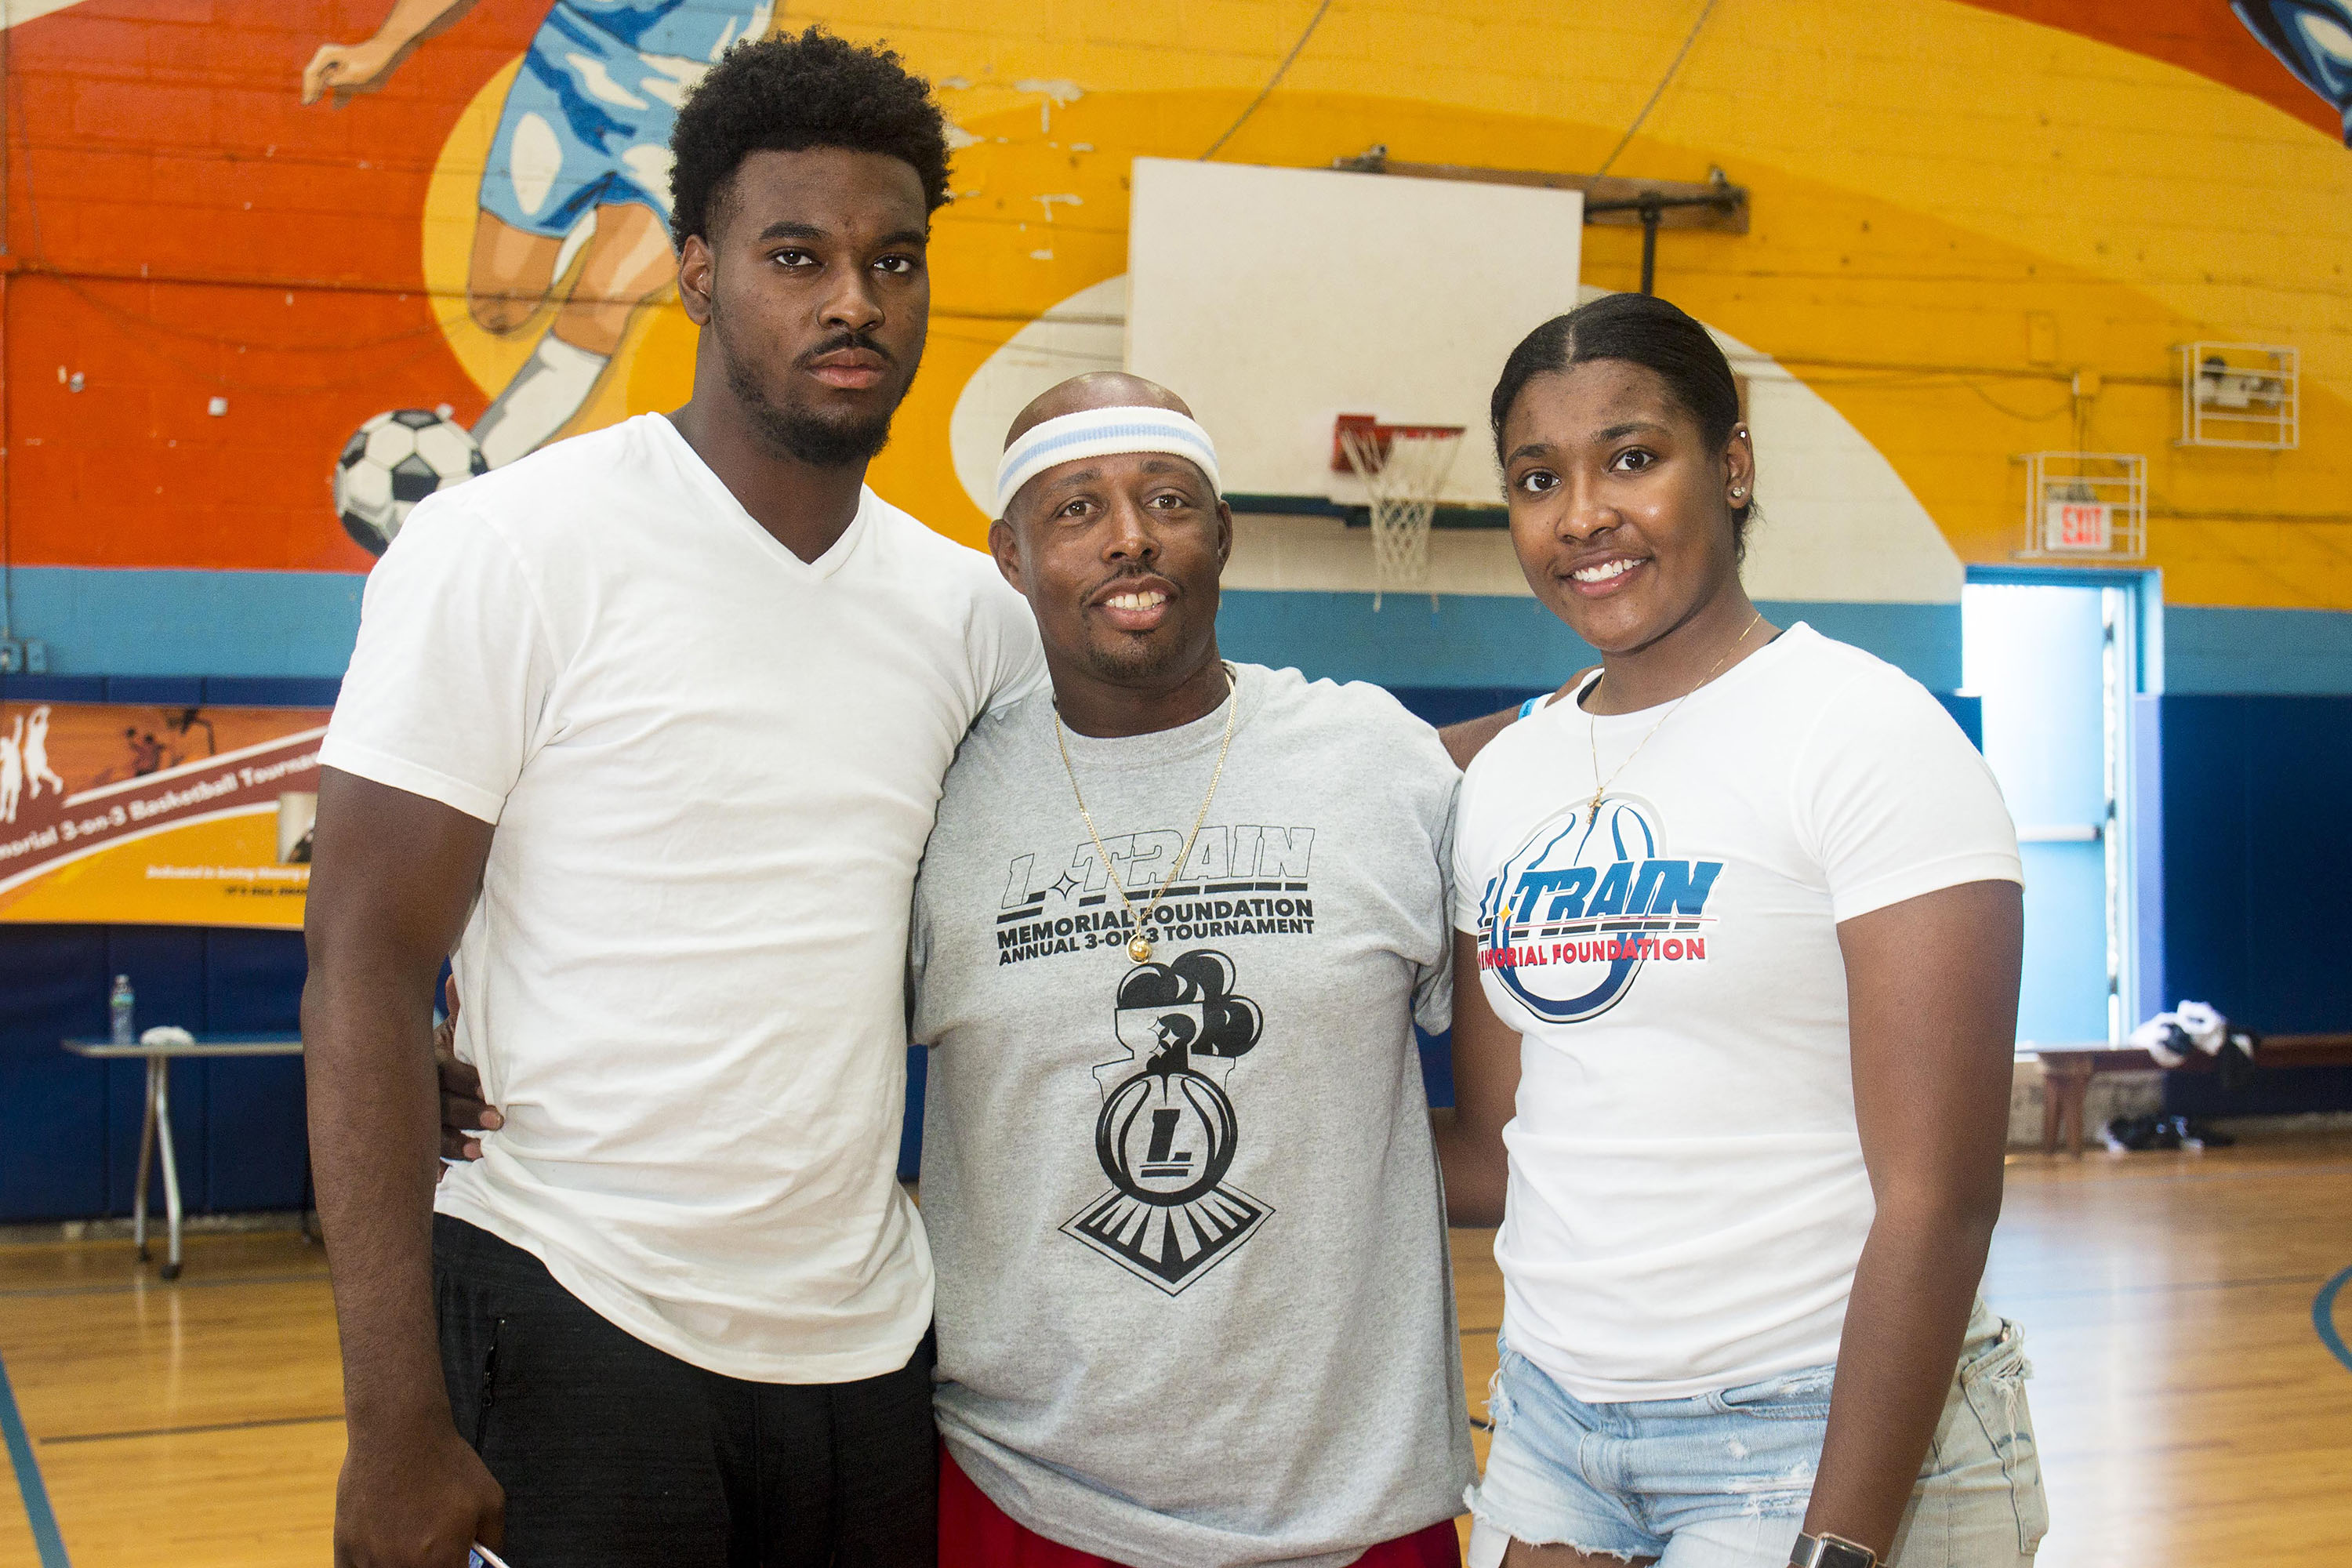 L-Train Memorial Foundation - Annual 3-On-3 Tournament (Boys and Girls Club Union, NJ) 08-07-16_0199